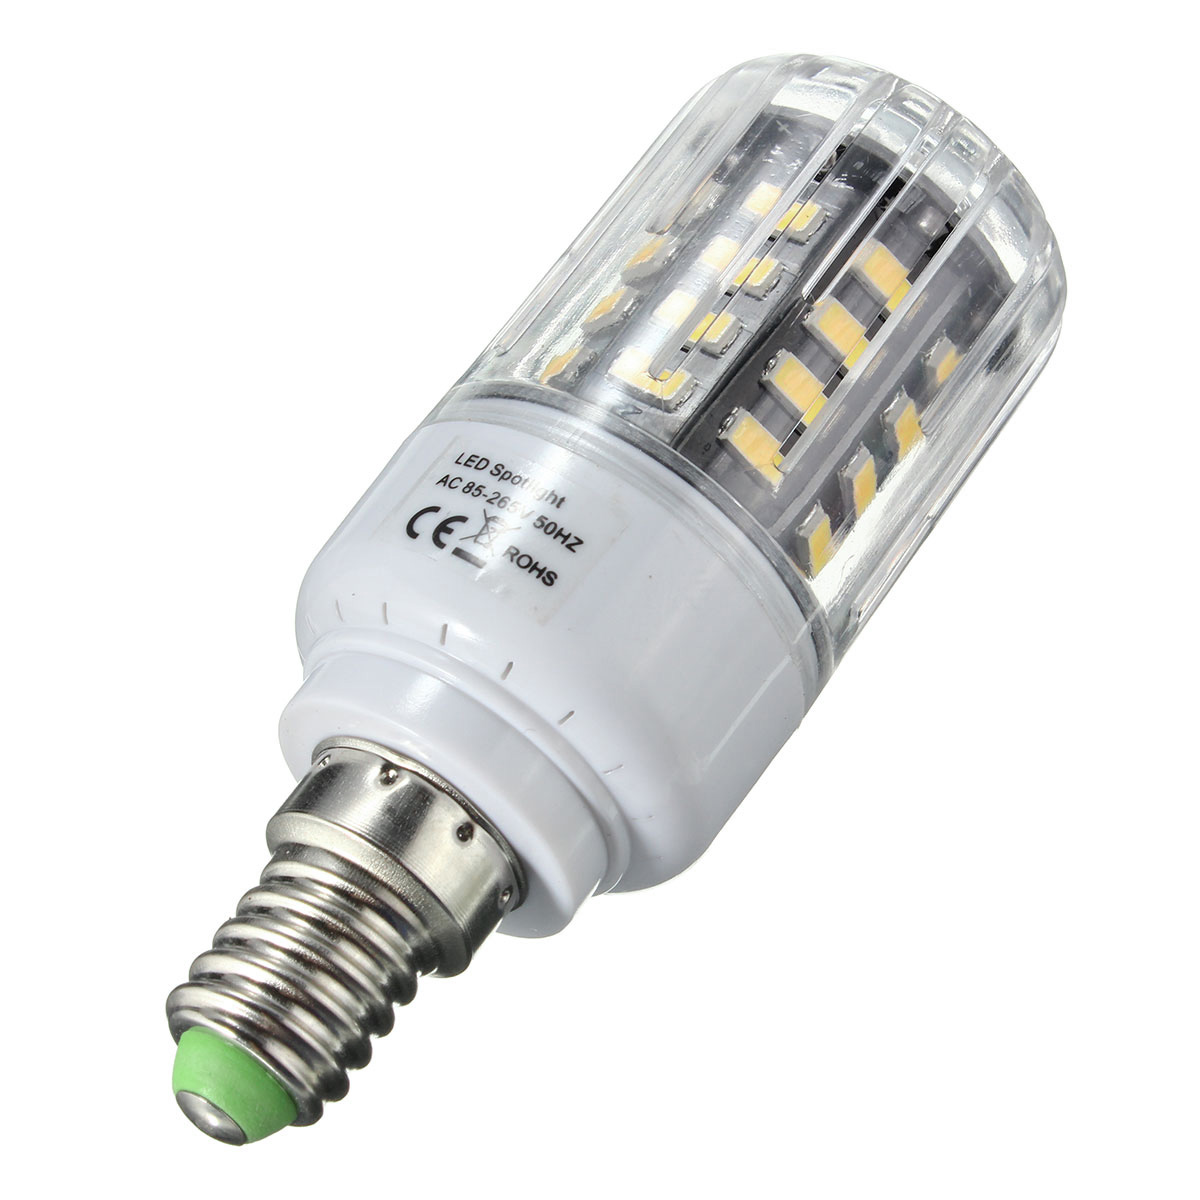 E27 E17 E14 E12 B22 GU10 3W 40 SMD 5736 LED White Warm White Natural White Light Corn Bulb AC85-265V